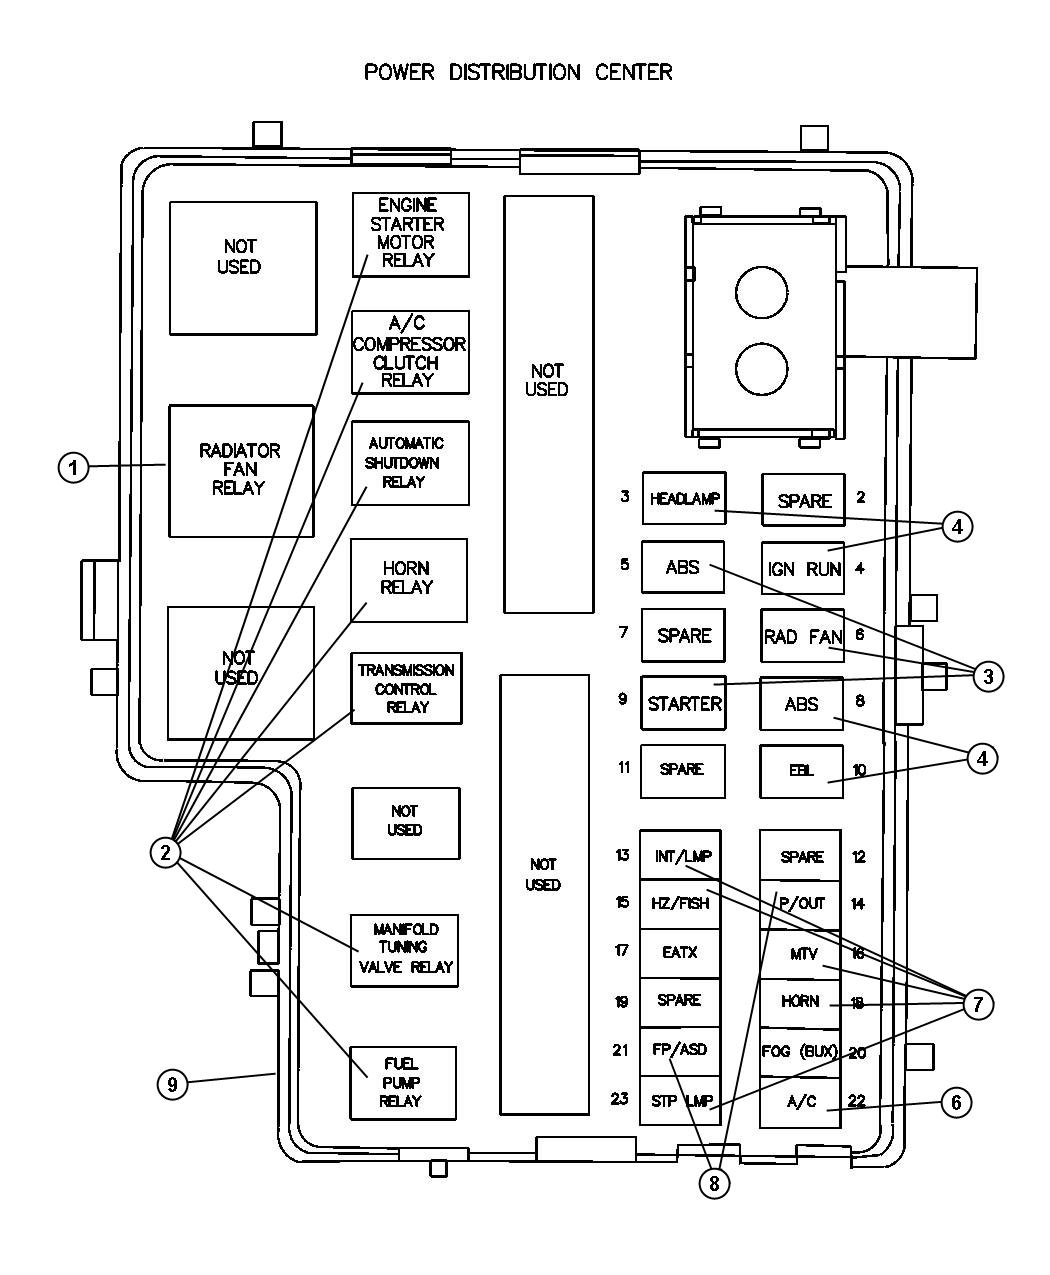 hight resolution of fuse box diagram for 2000 dodge neon wiring diagram portal 2002 dodge neon fuse box 2005 dodge neon fuse box